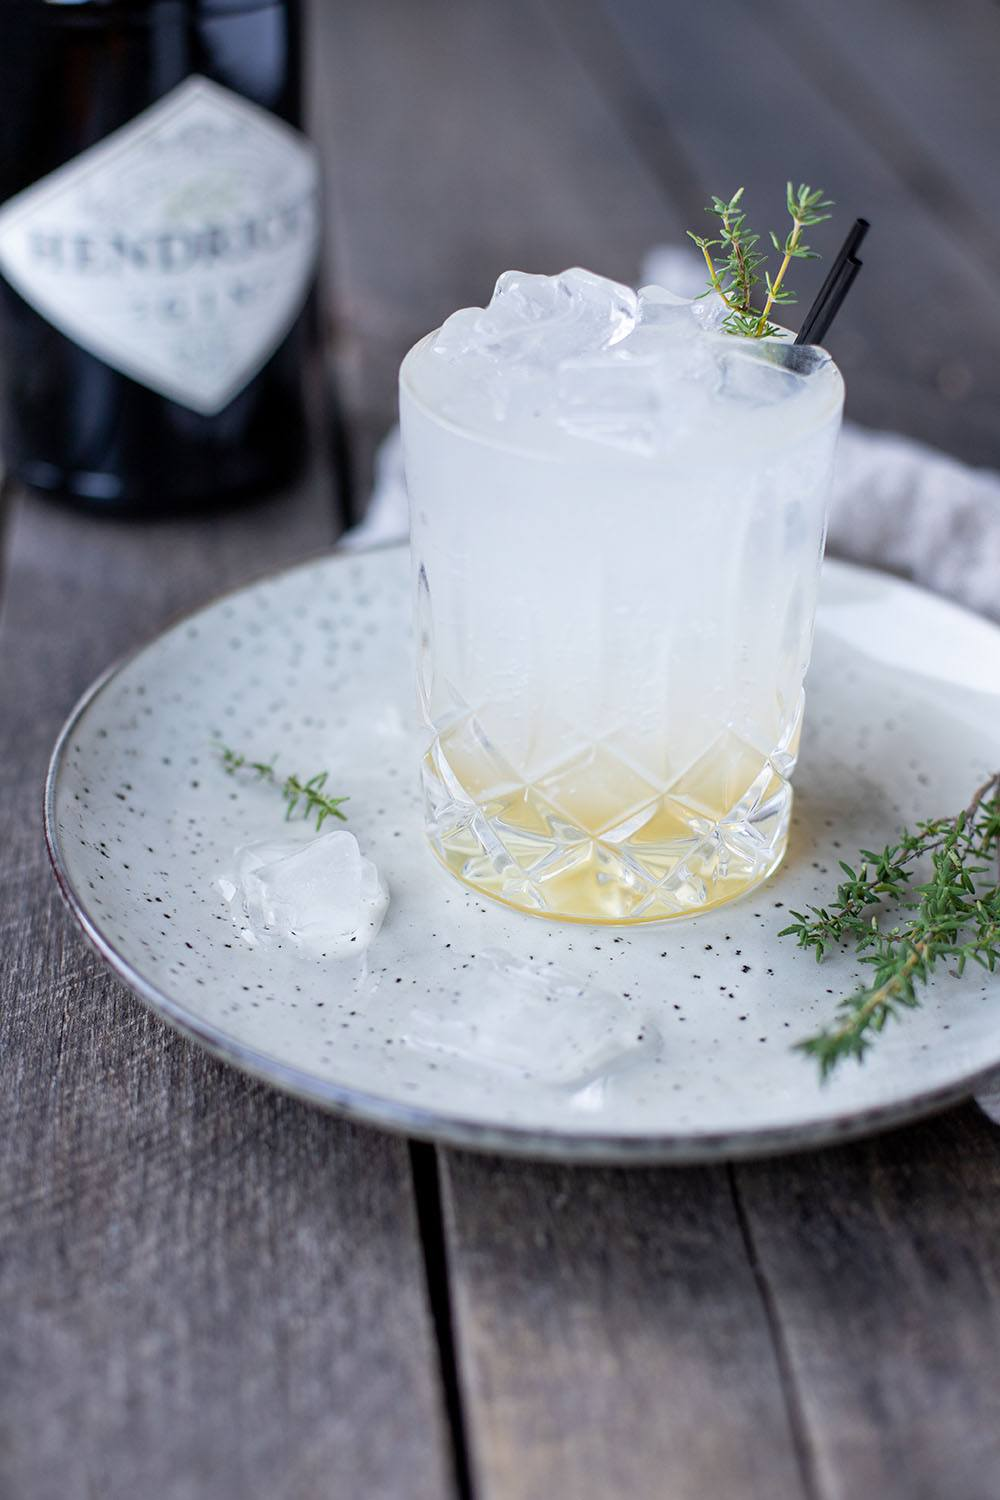 Fredagscocktail – Gin hass